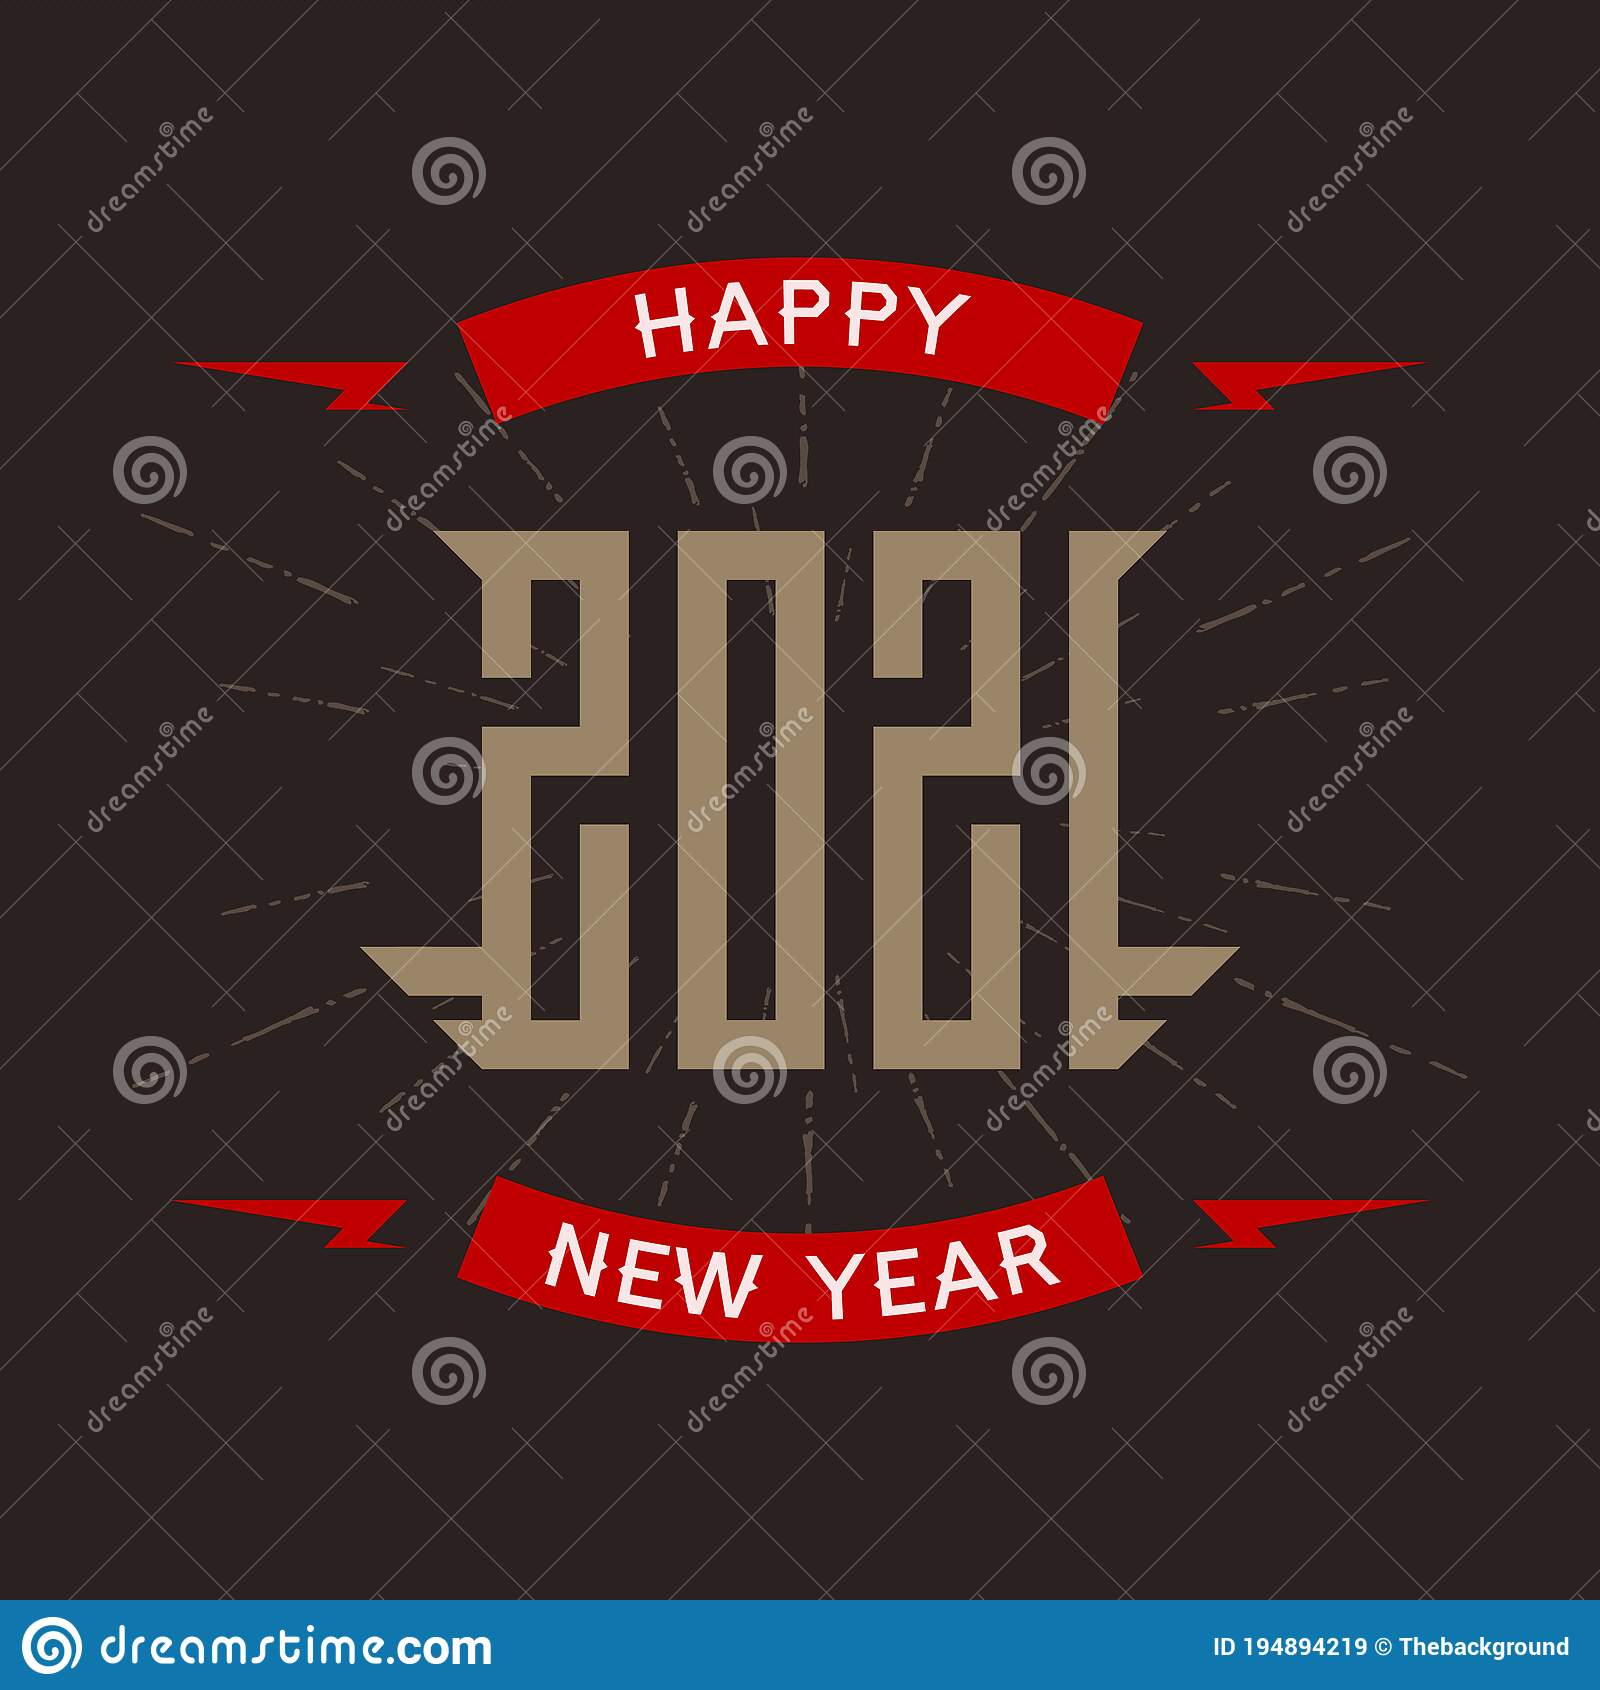 Happy New Year 2021 Poster With Stylized Inscription And Red Lightnings T Shirt Apparels Cool Print With Inscription Stock Vector Illustration Of Badge Cool 194894219